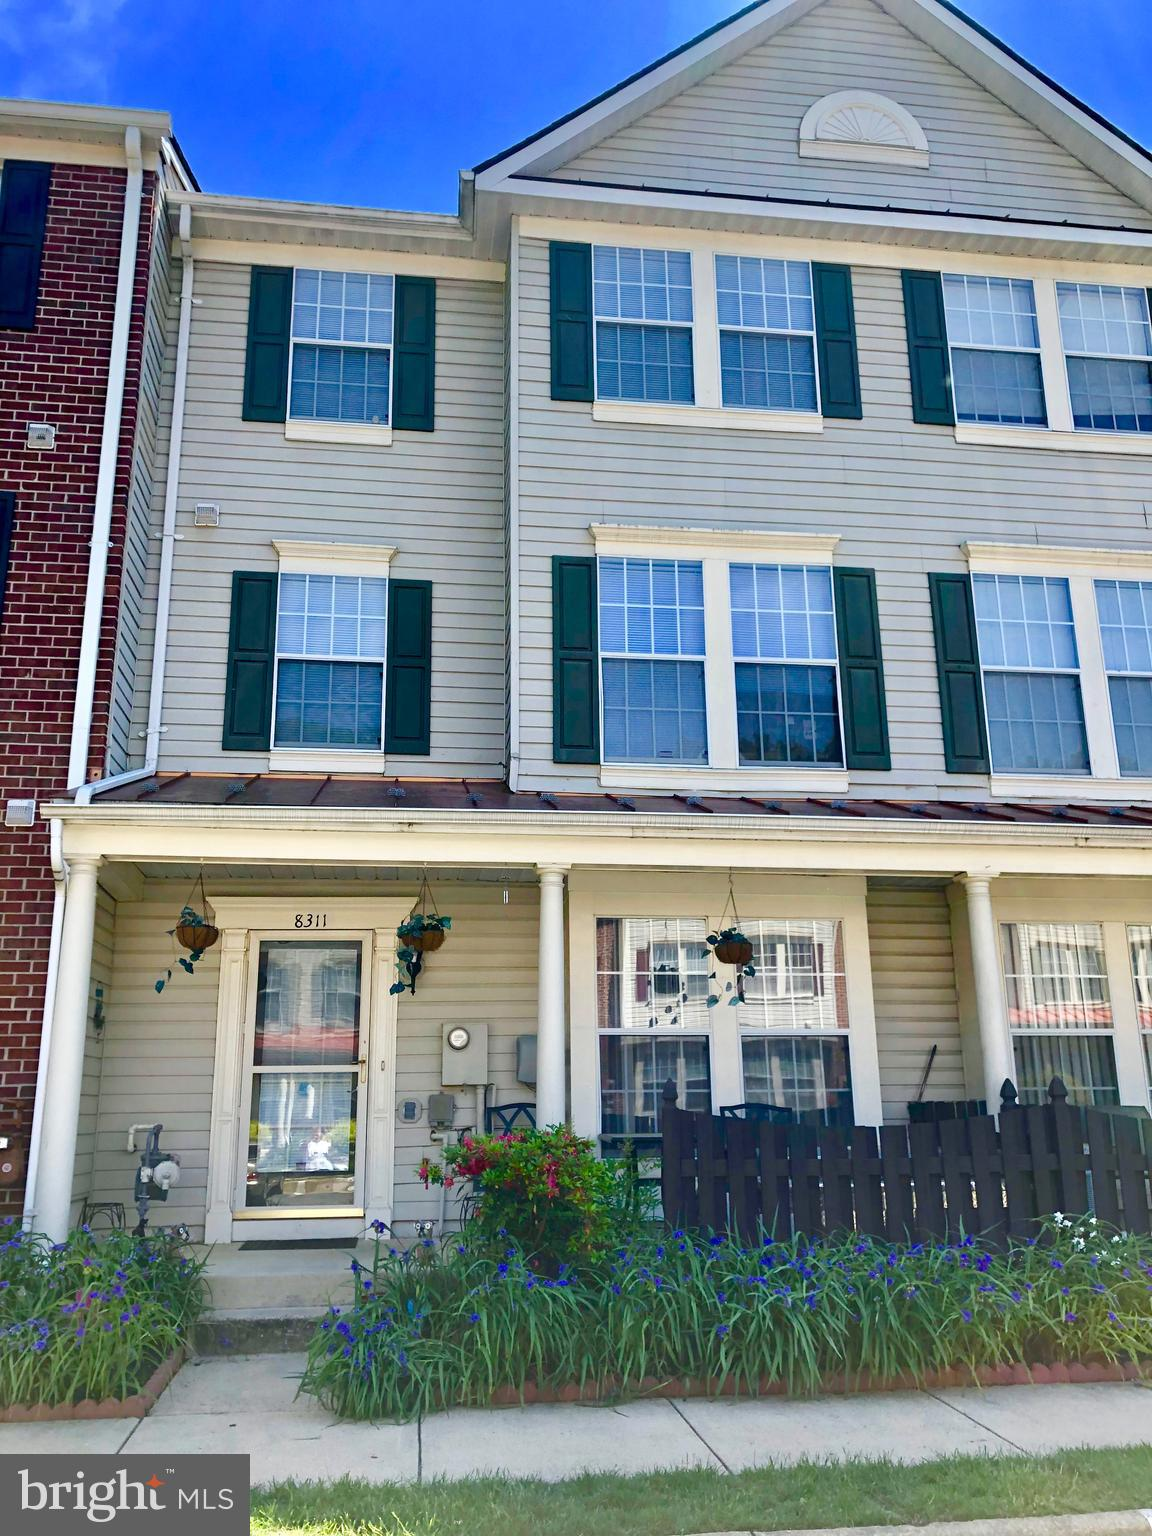 Beautiful and very spacious townhouse condo in Lorton area. 3 bedrooms and 2 1/2 bathrooms in 3 levels. Attic storage. 2 assigned parking spaces plus visitors. Close to major routes. Condo fee includes water, trash removal, snow removal, green areas maintenance, pool, fitness center, party room.